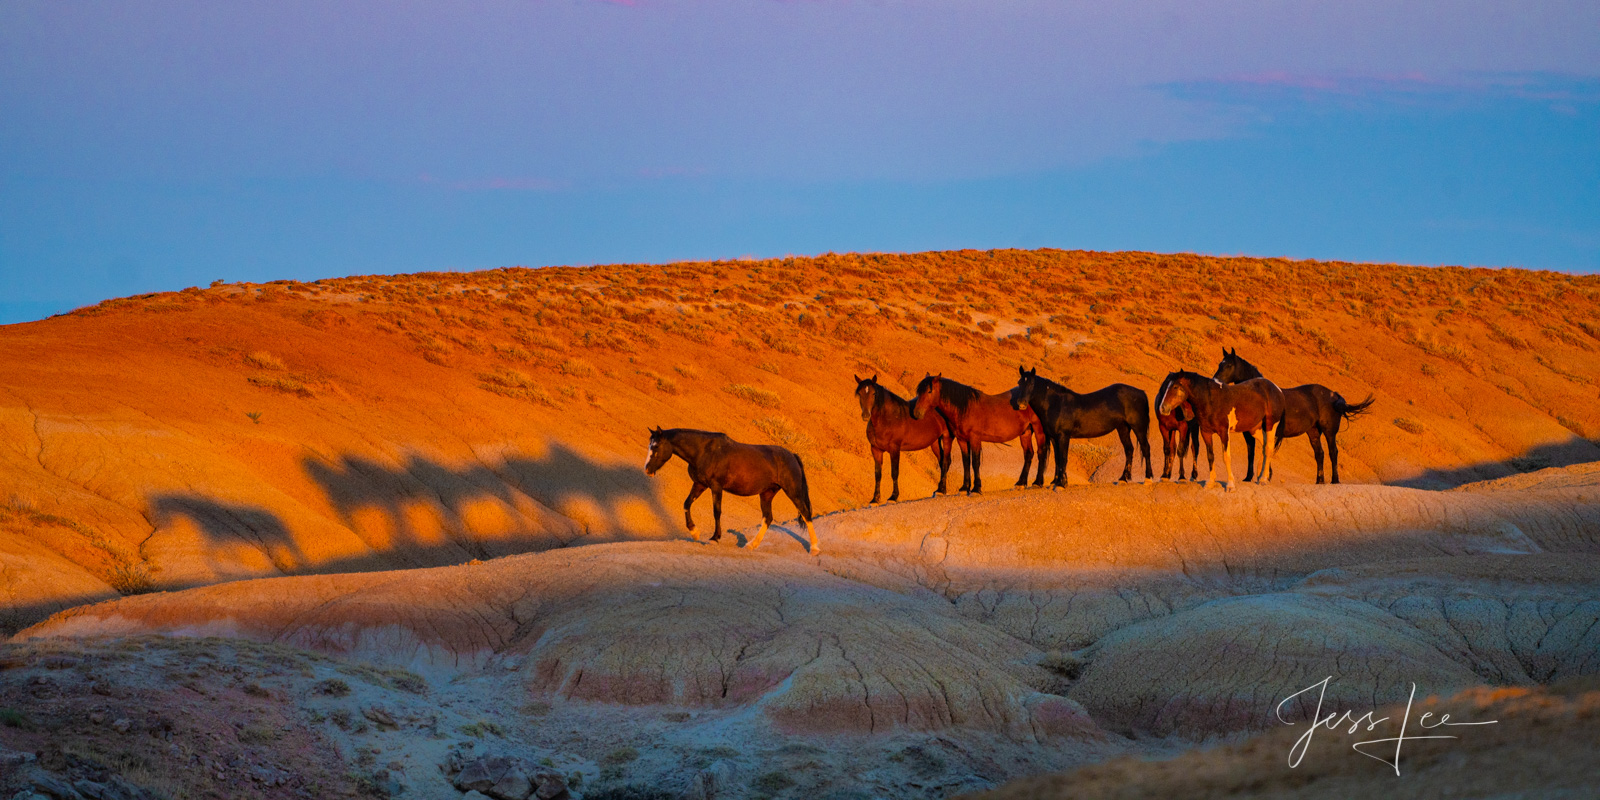 Shadow Mustangs a Fine art Limited edition Photo offered as 100 Exclusive Prints